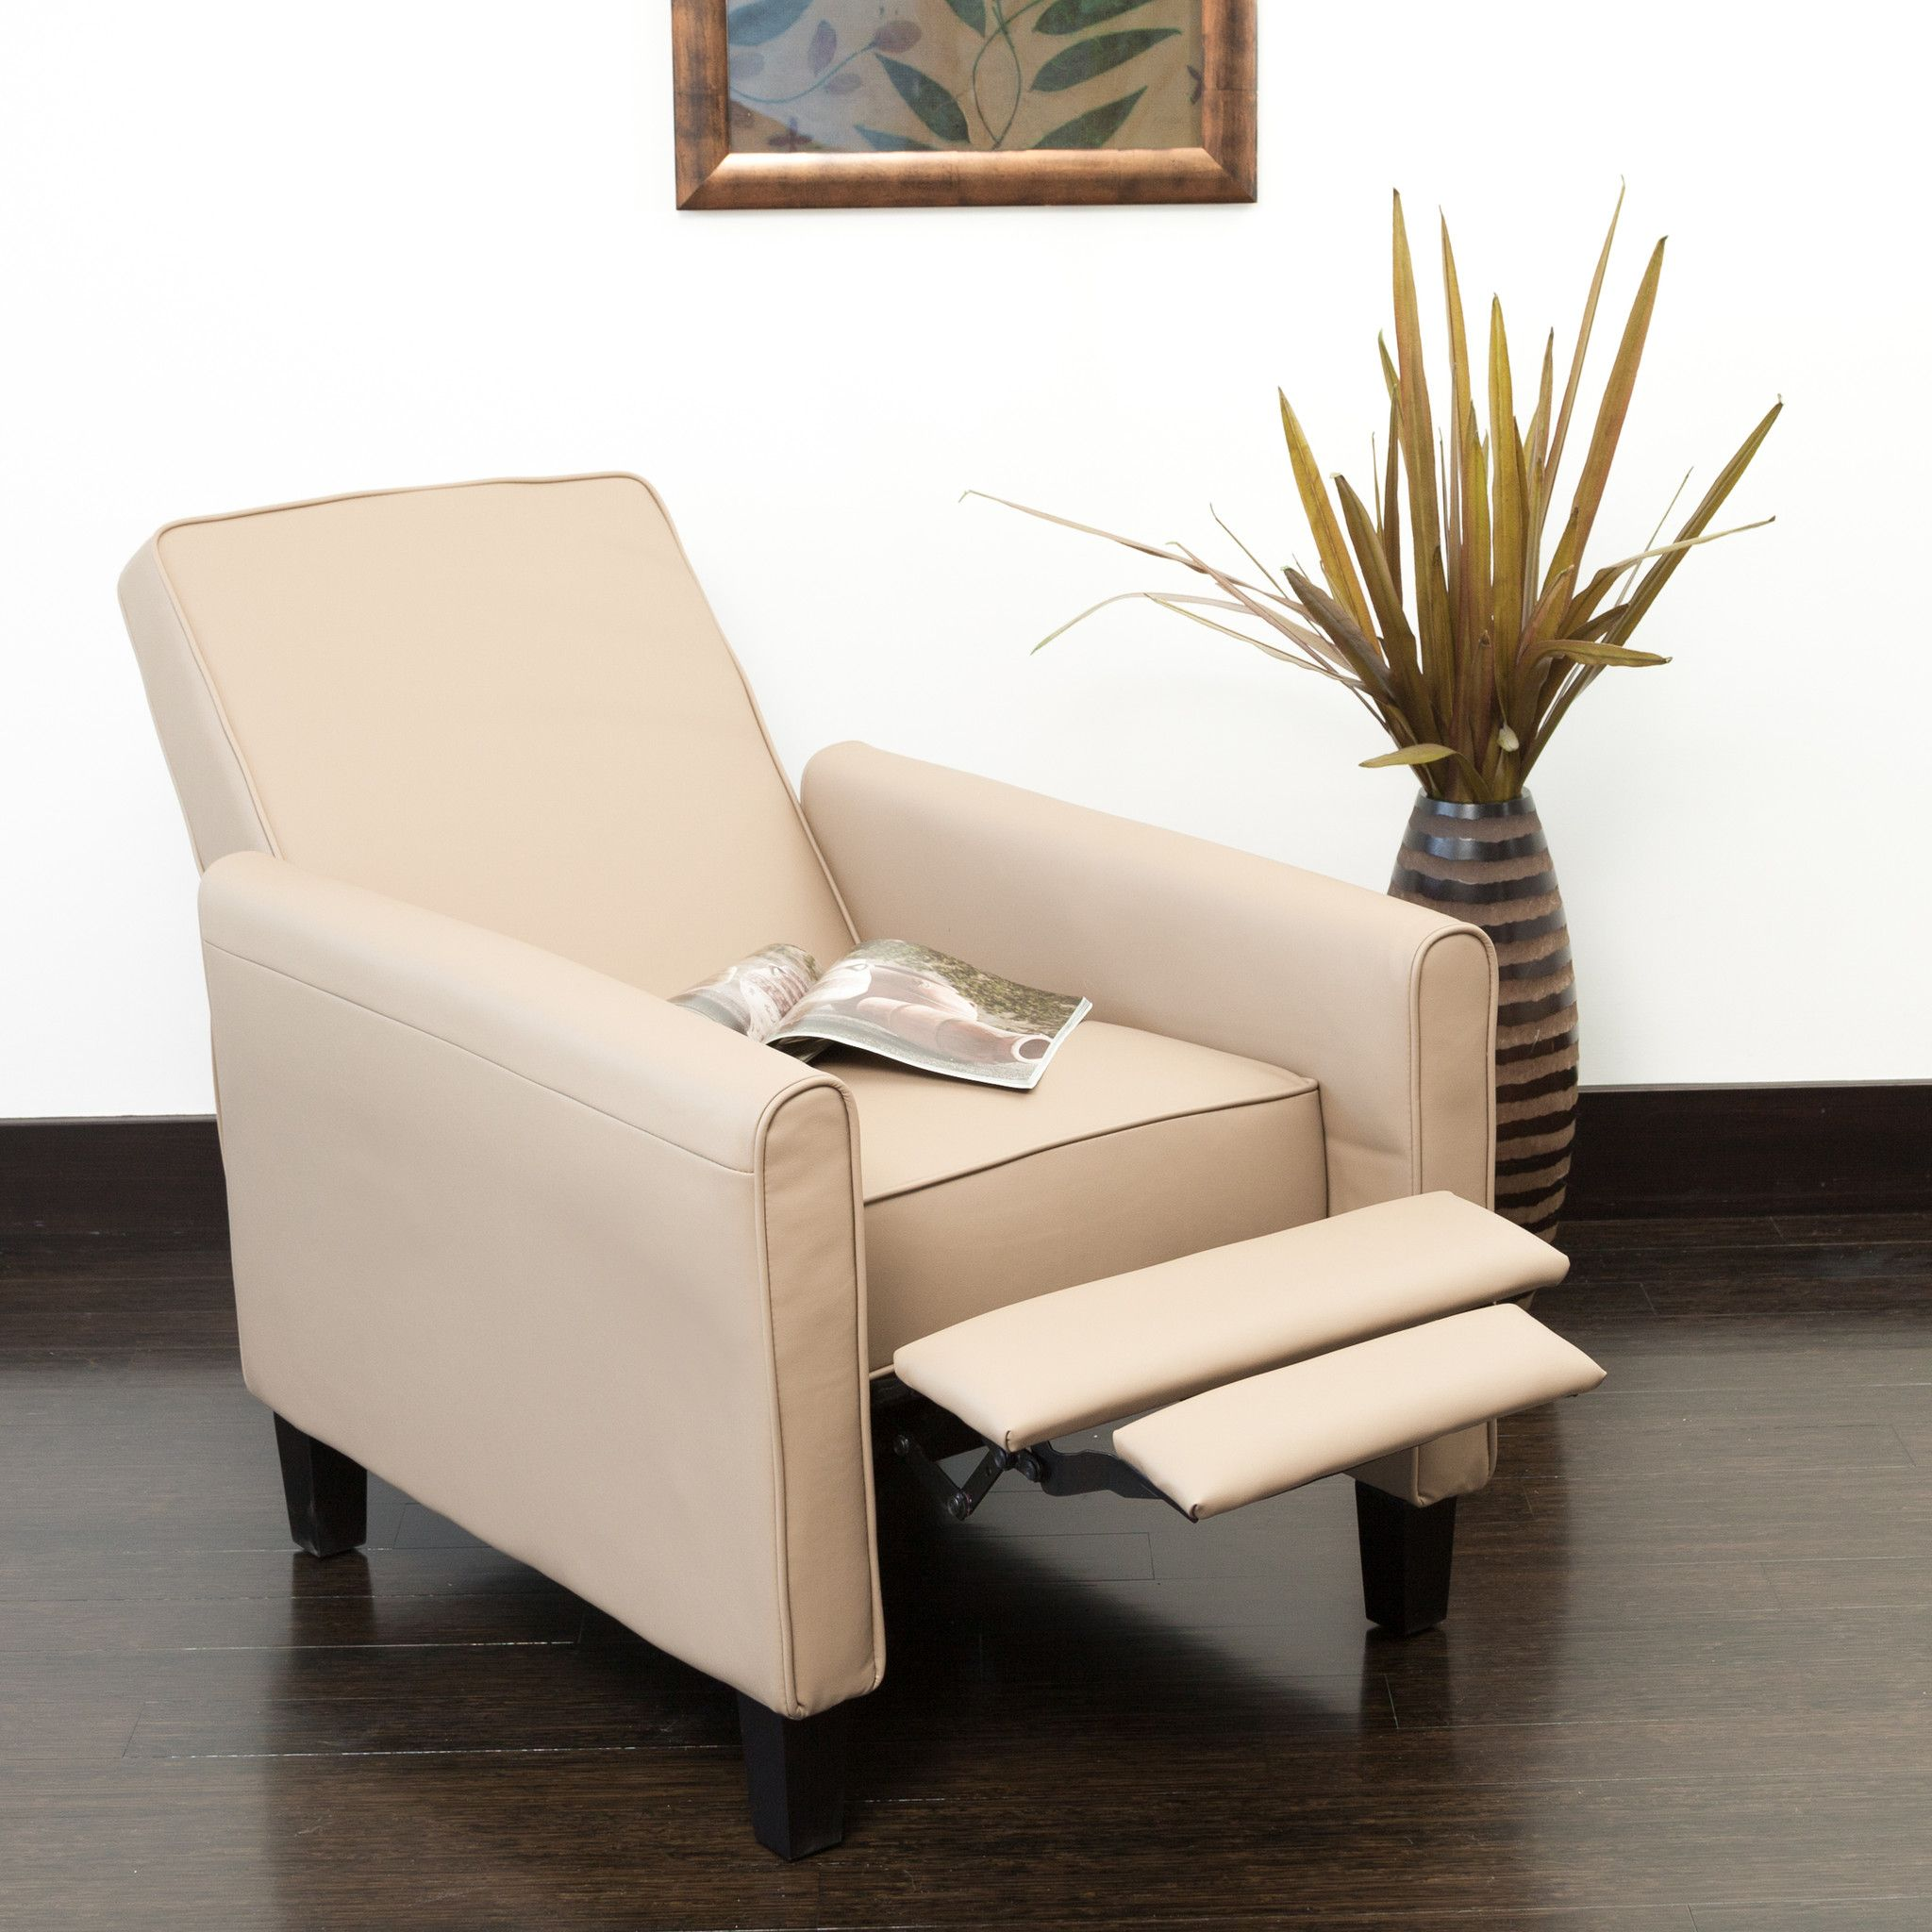 darvis leather recliner club chair brown christopher knight home thomas the train lucas camel products